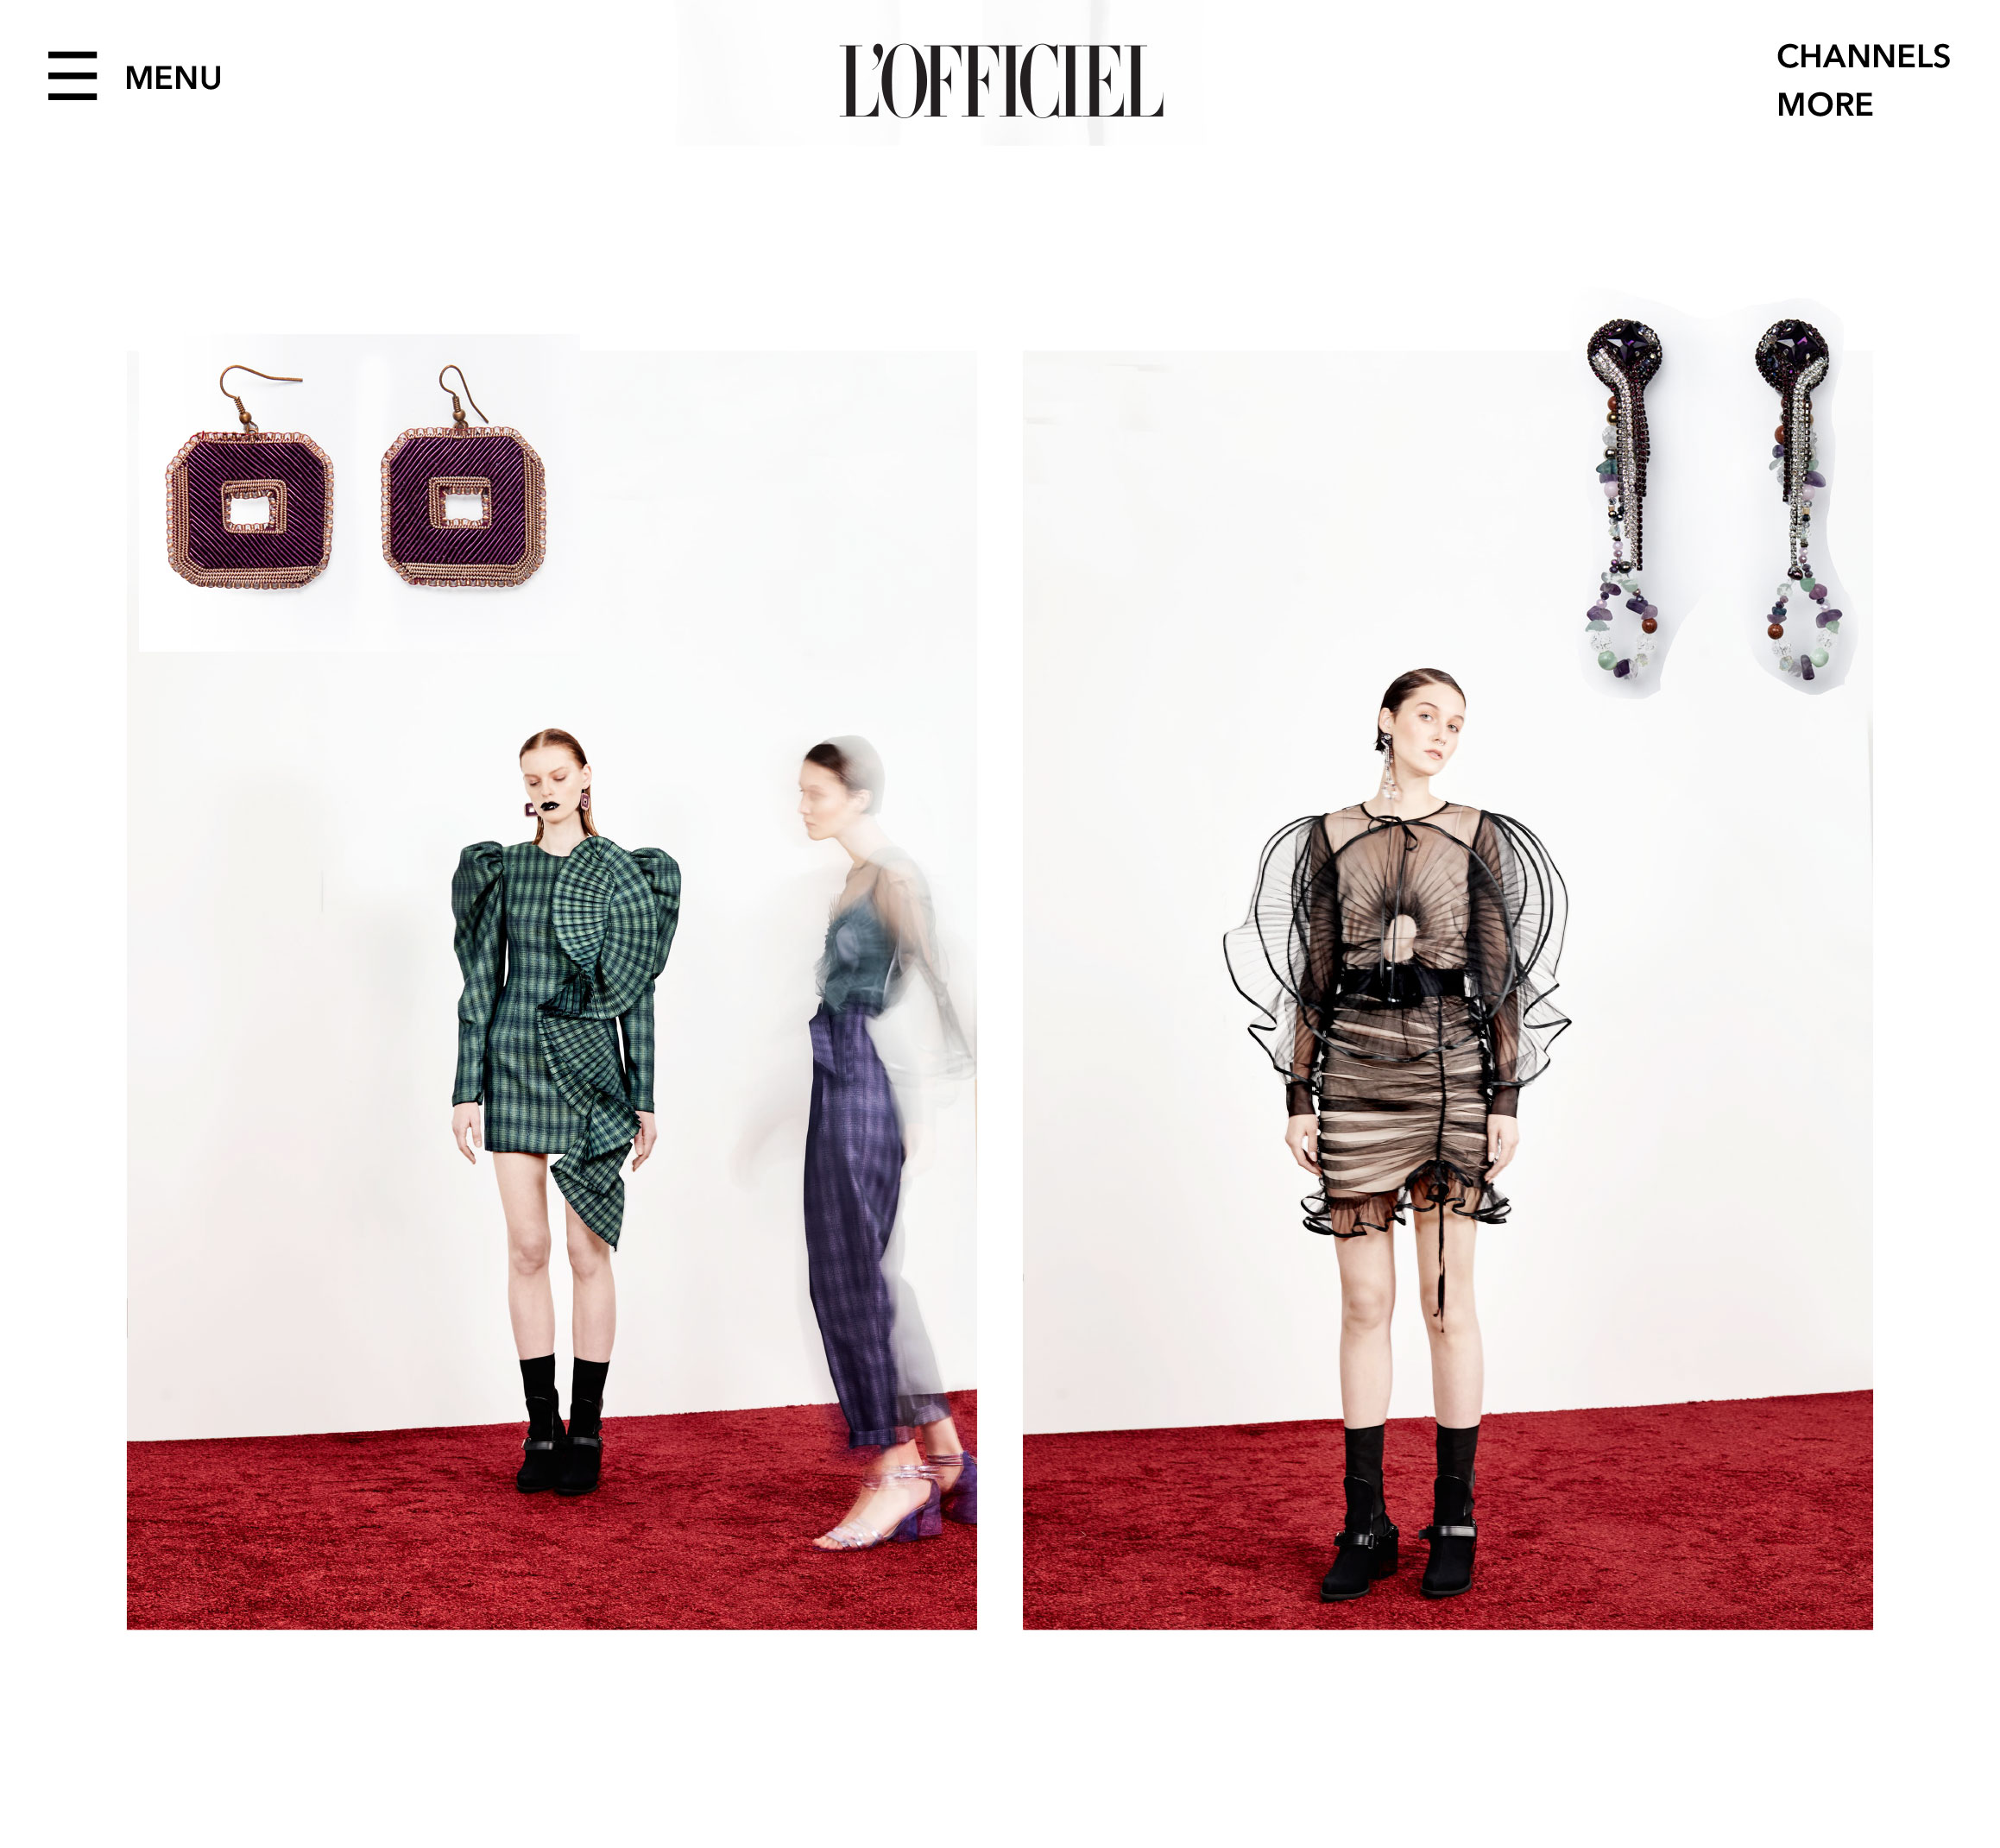 L'officiel-Art-In-Movement-Dzyak-5-Lada-Legina-Jewelry.jpg